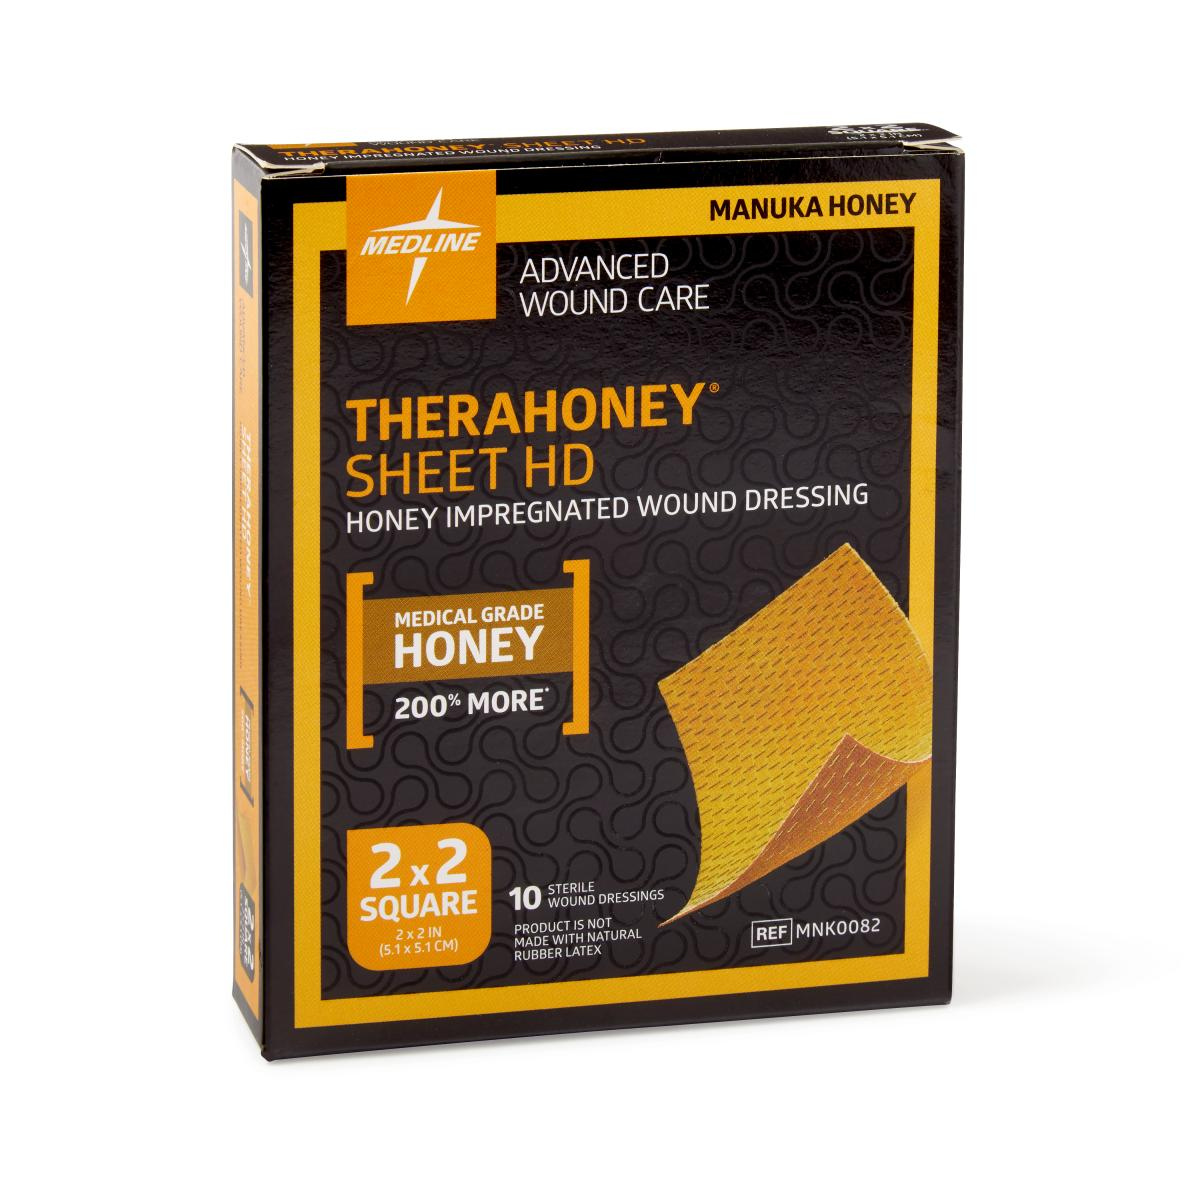 Dressing 200 Cm Therahoney Hd Honey Wound Dressings 10 Each Box